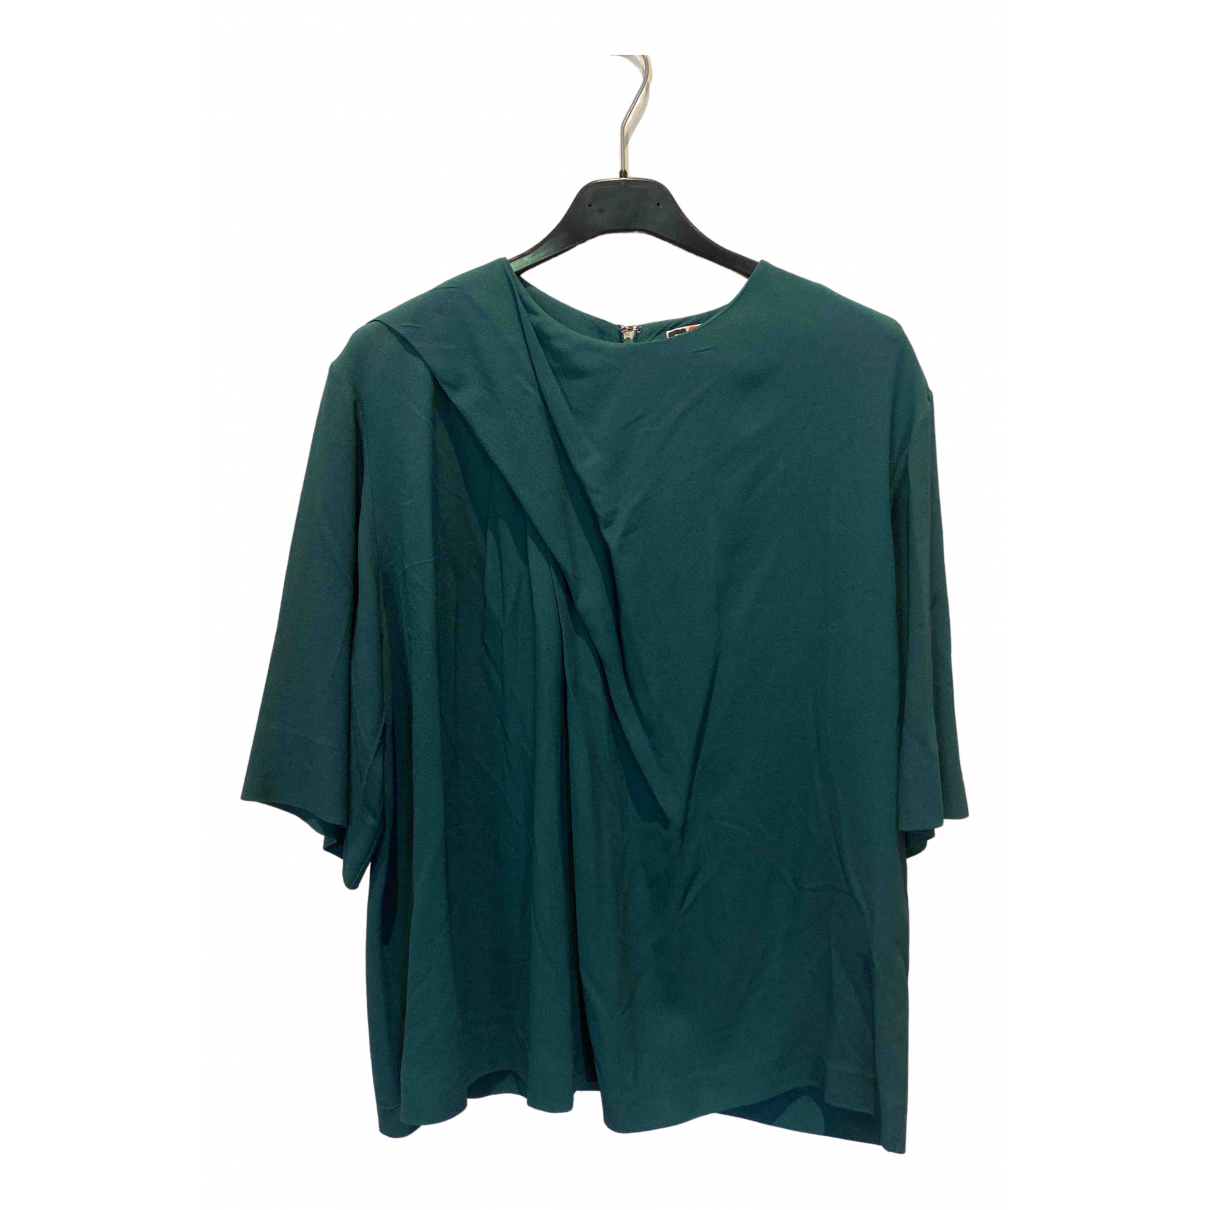 Msgm \N Green  top for Women 42 IT